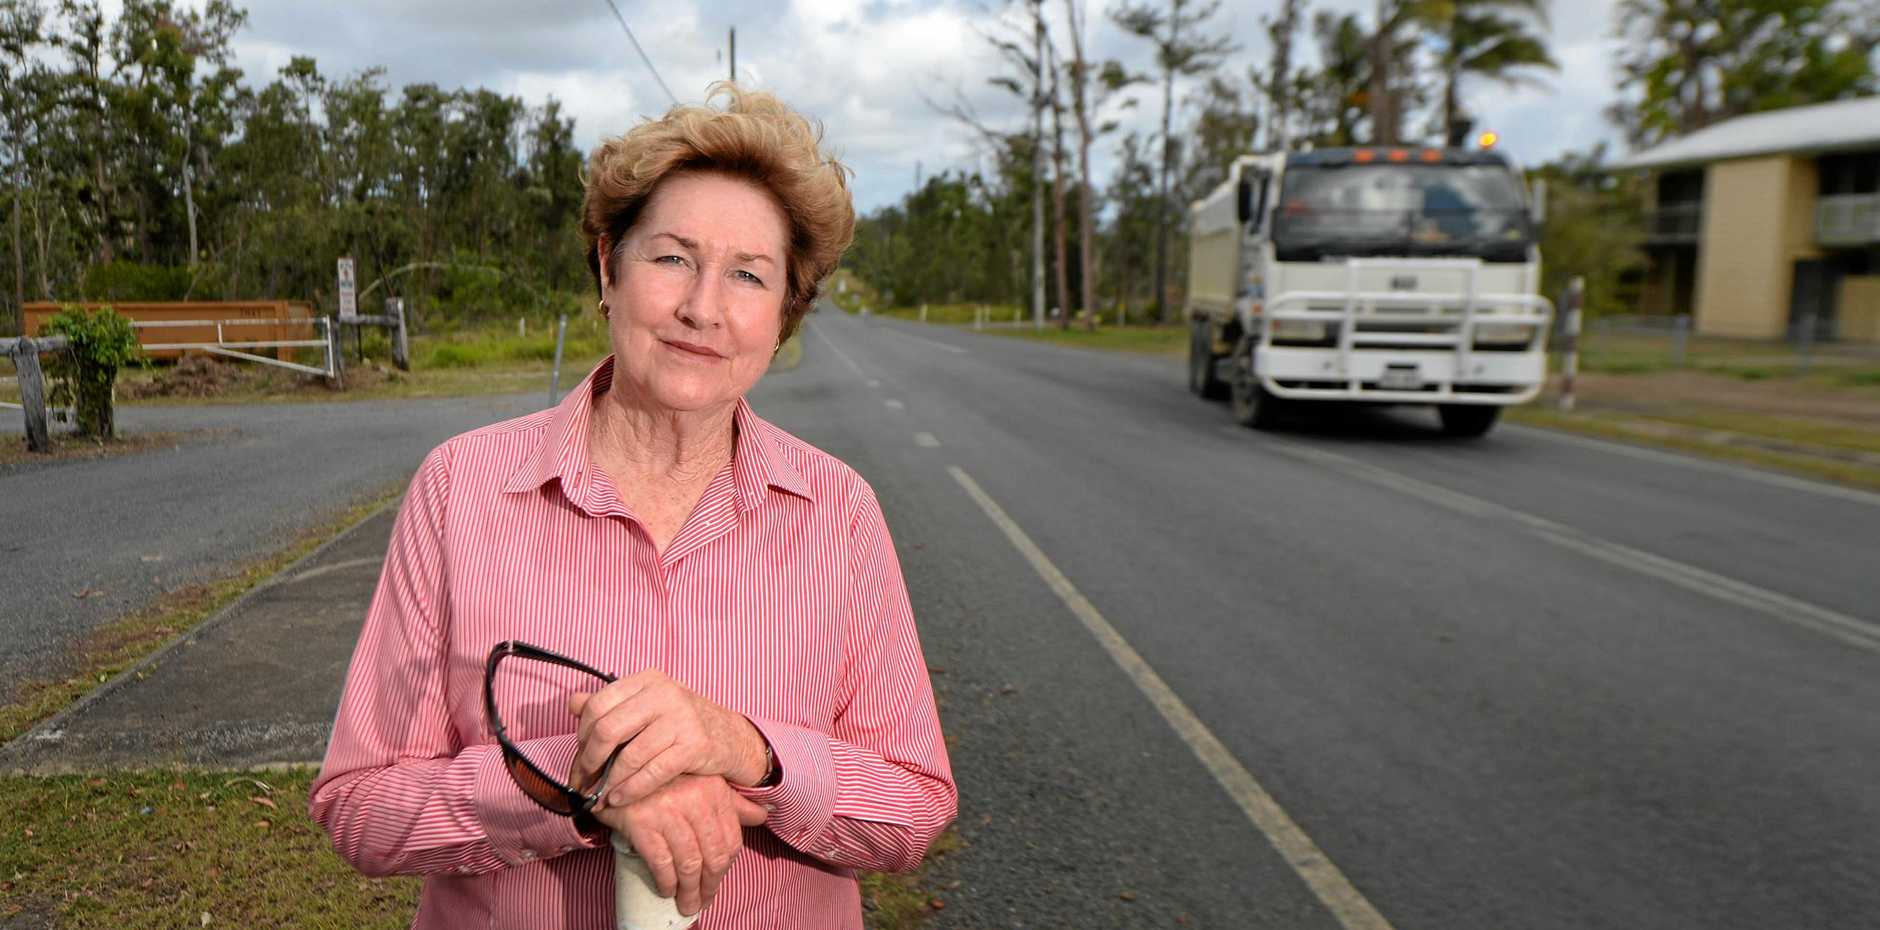 Glenda Mather was kicked out of a council meeting this week for not acting in the proper manner. Photo: Chris Ison / The Morning Bulletin